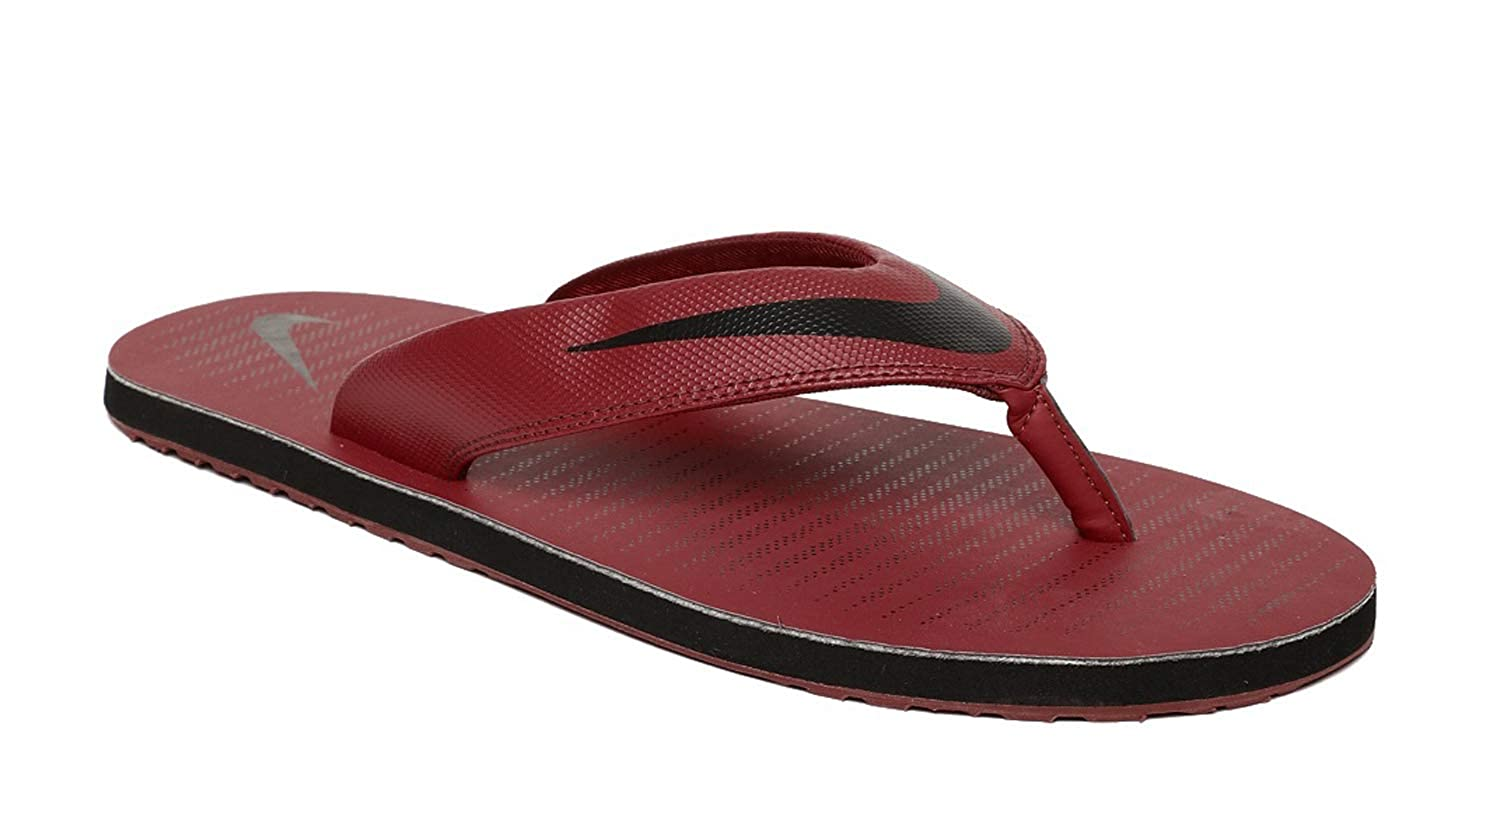 eea2c76ce Nike Men s Chroma Thong 5 Red Crush Black Flip Flops (833808-604)  Buy  Online at Low Prices in India - Amazon.in